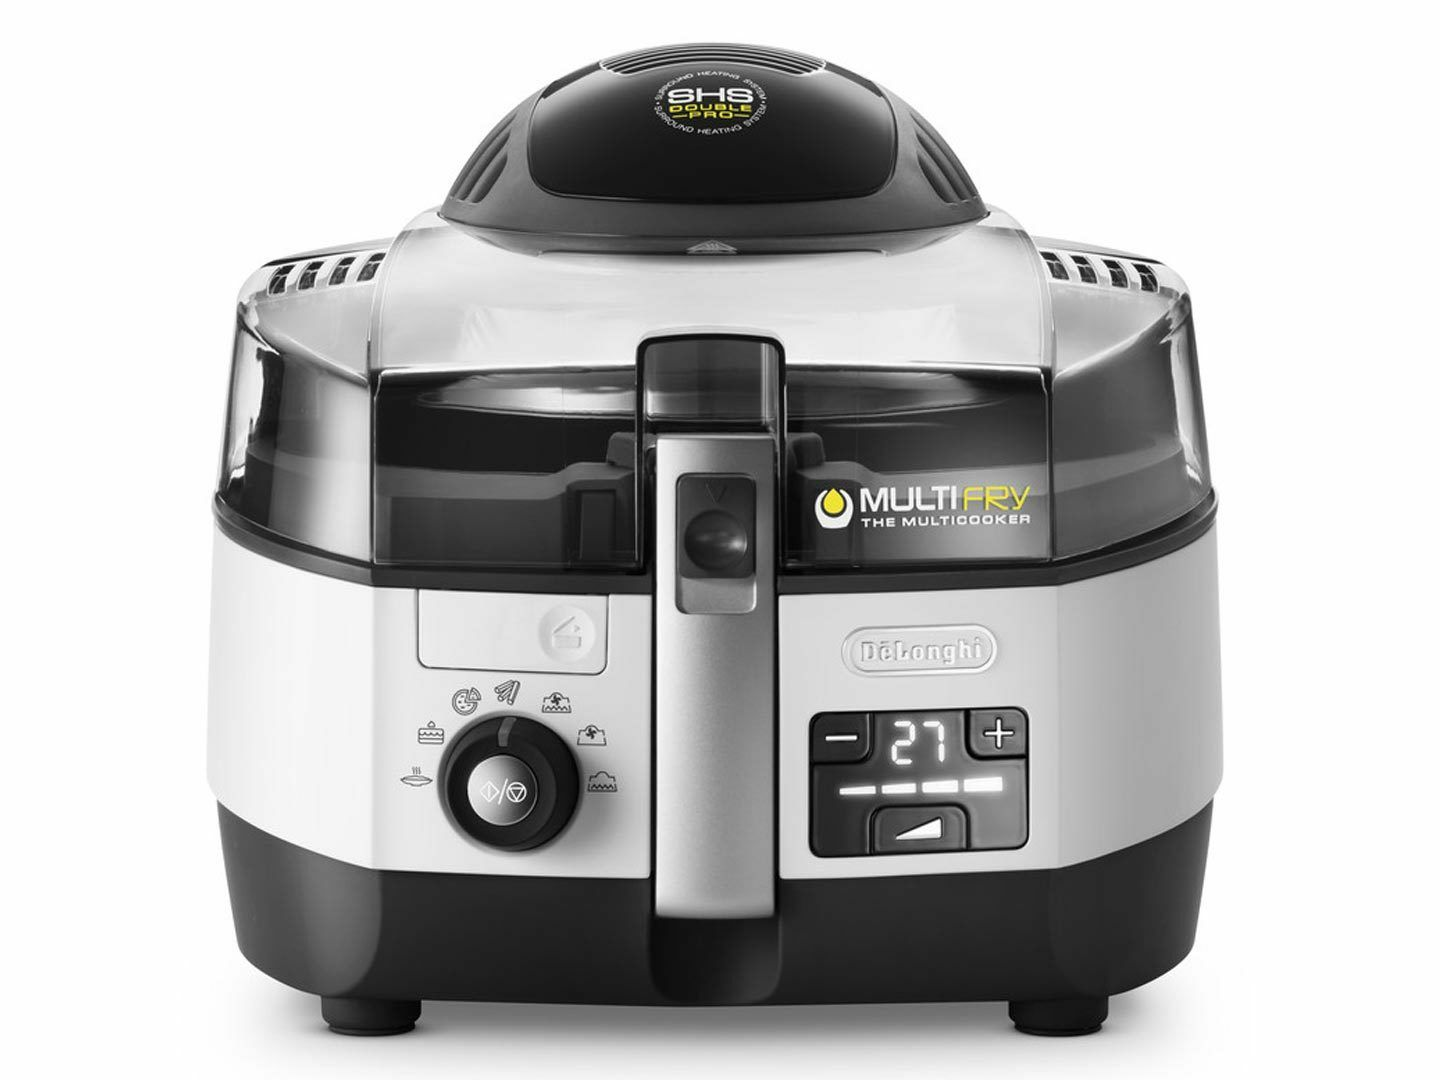 Delonghi FH1394 Extra Chef Low-Oil Fryer and Multicooker -   399.00